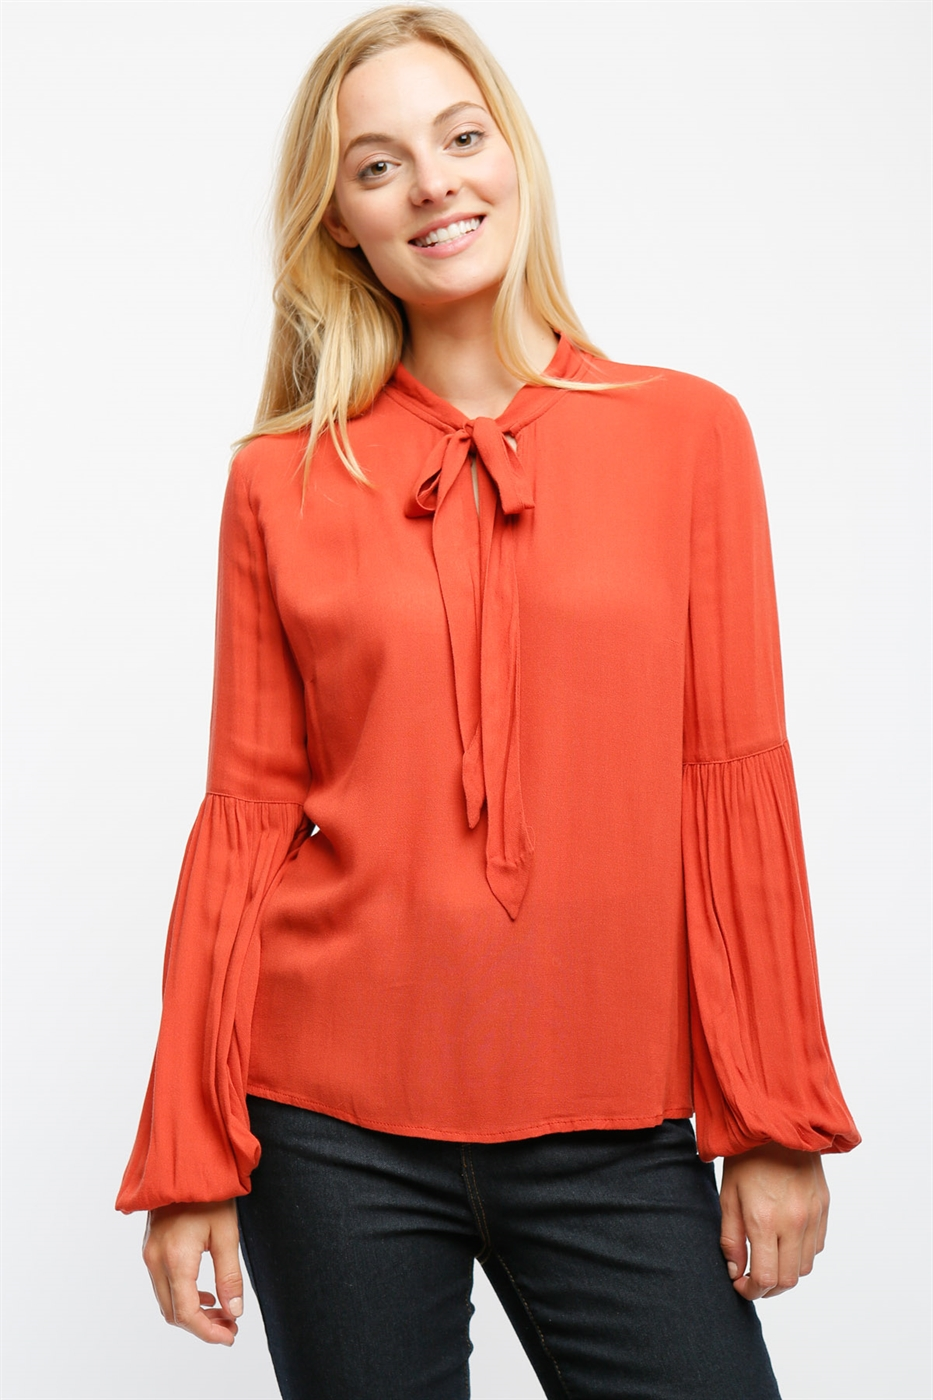 BALLOON SLEEVE TOP WITH TIE - orangeshine.com